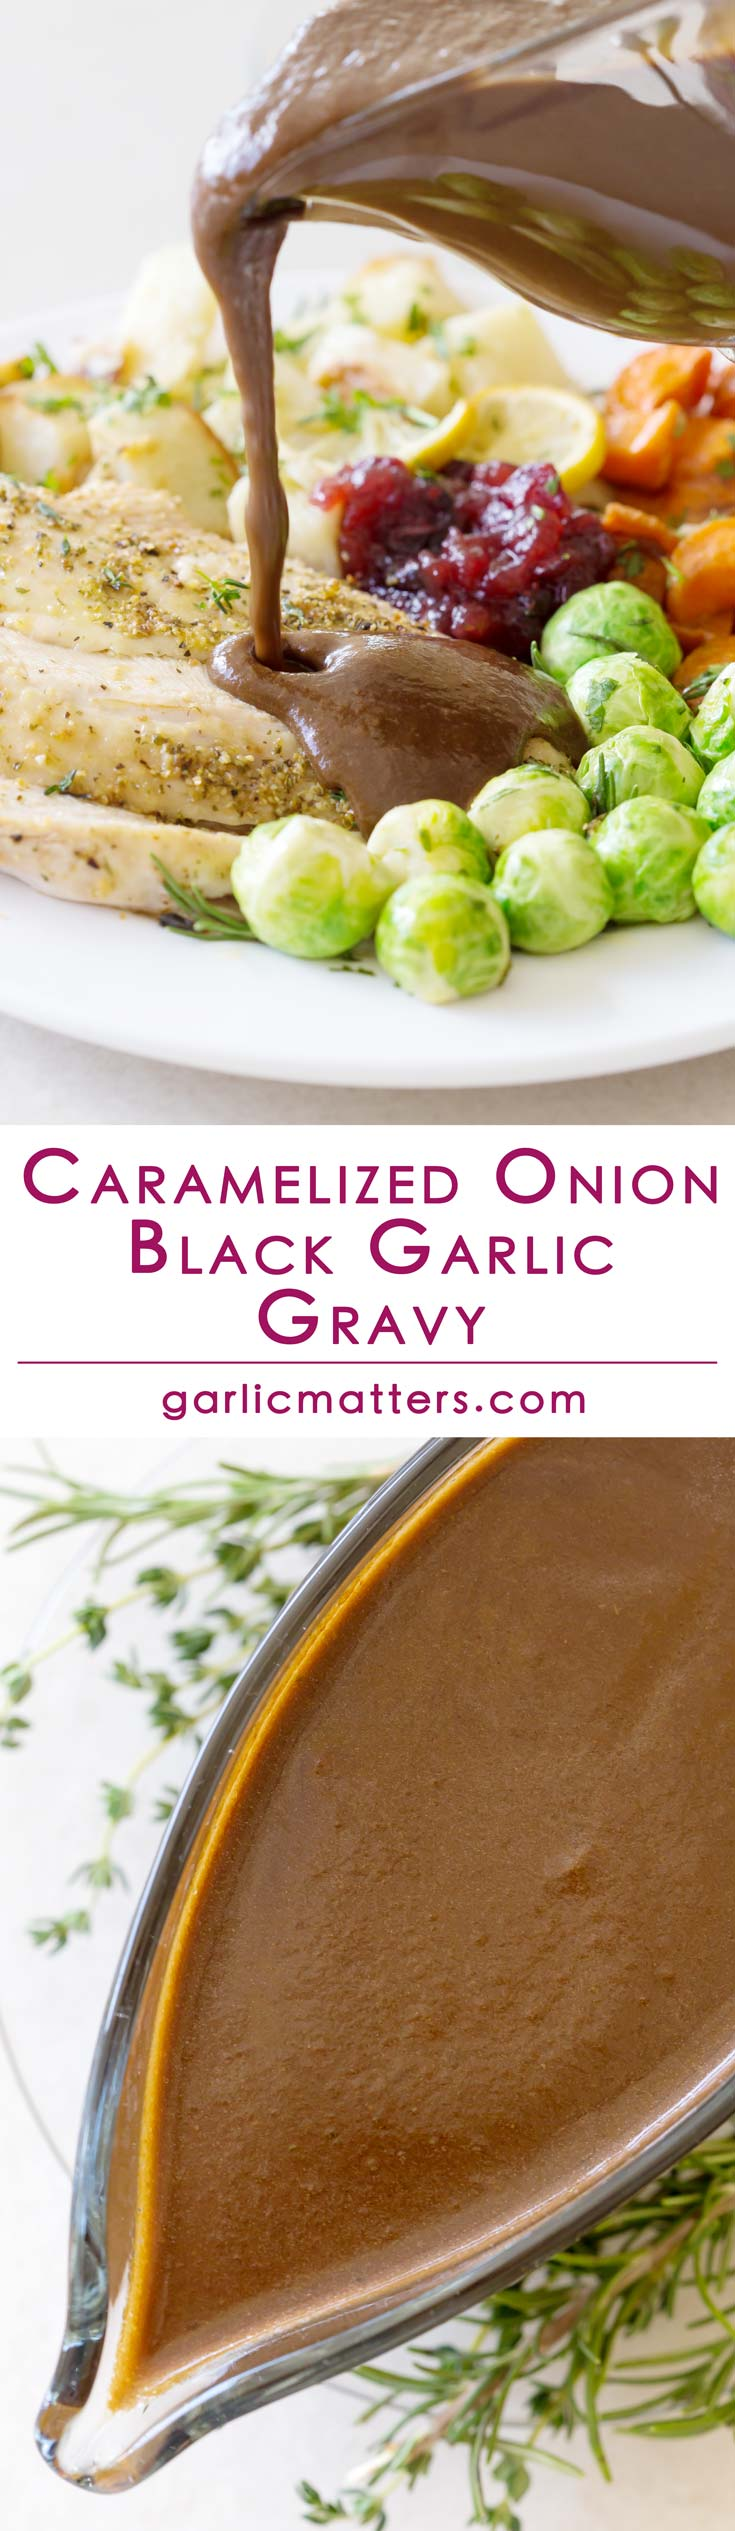 Caramelized onion and black garlic gravy is perfect for any roast meal, including Thanksgiving or Christmas lunch or dinner. This is an easy make-ahead, rich & tasty, 40 min recipe, which will bring even the most boring plate of food back to life. It works well with white and red meat as well as roasted veggies. Delicious & generous, as it should be during any festive season!